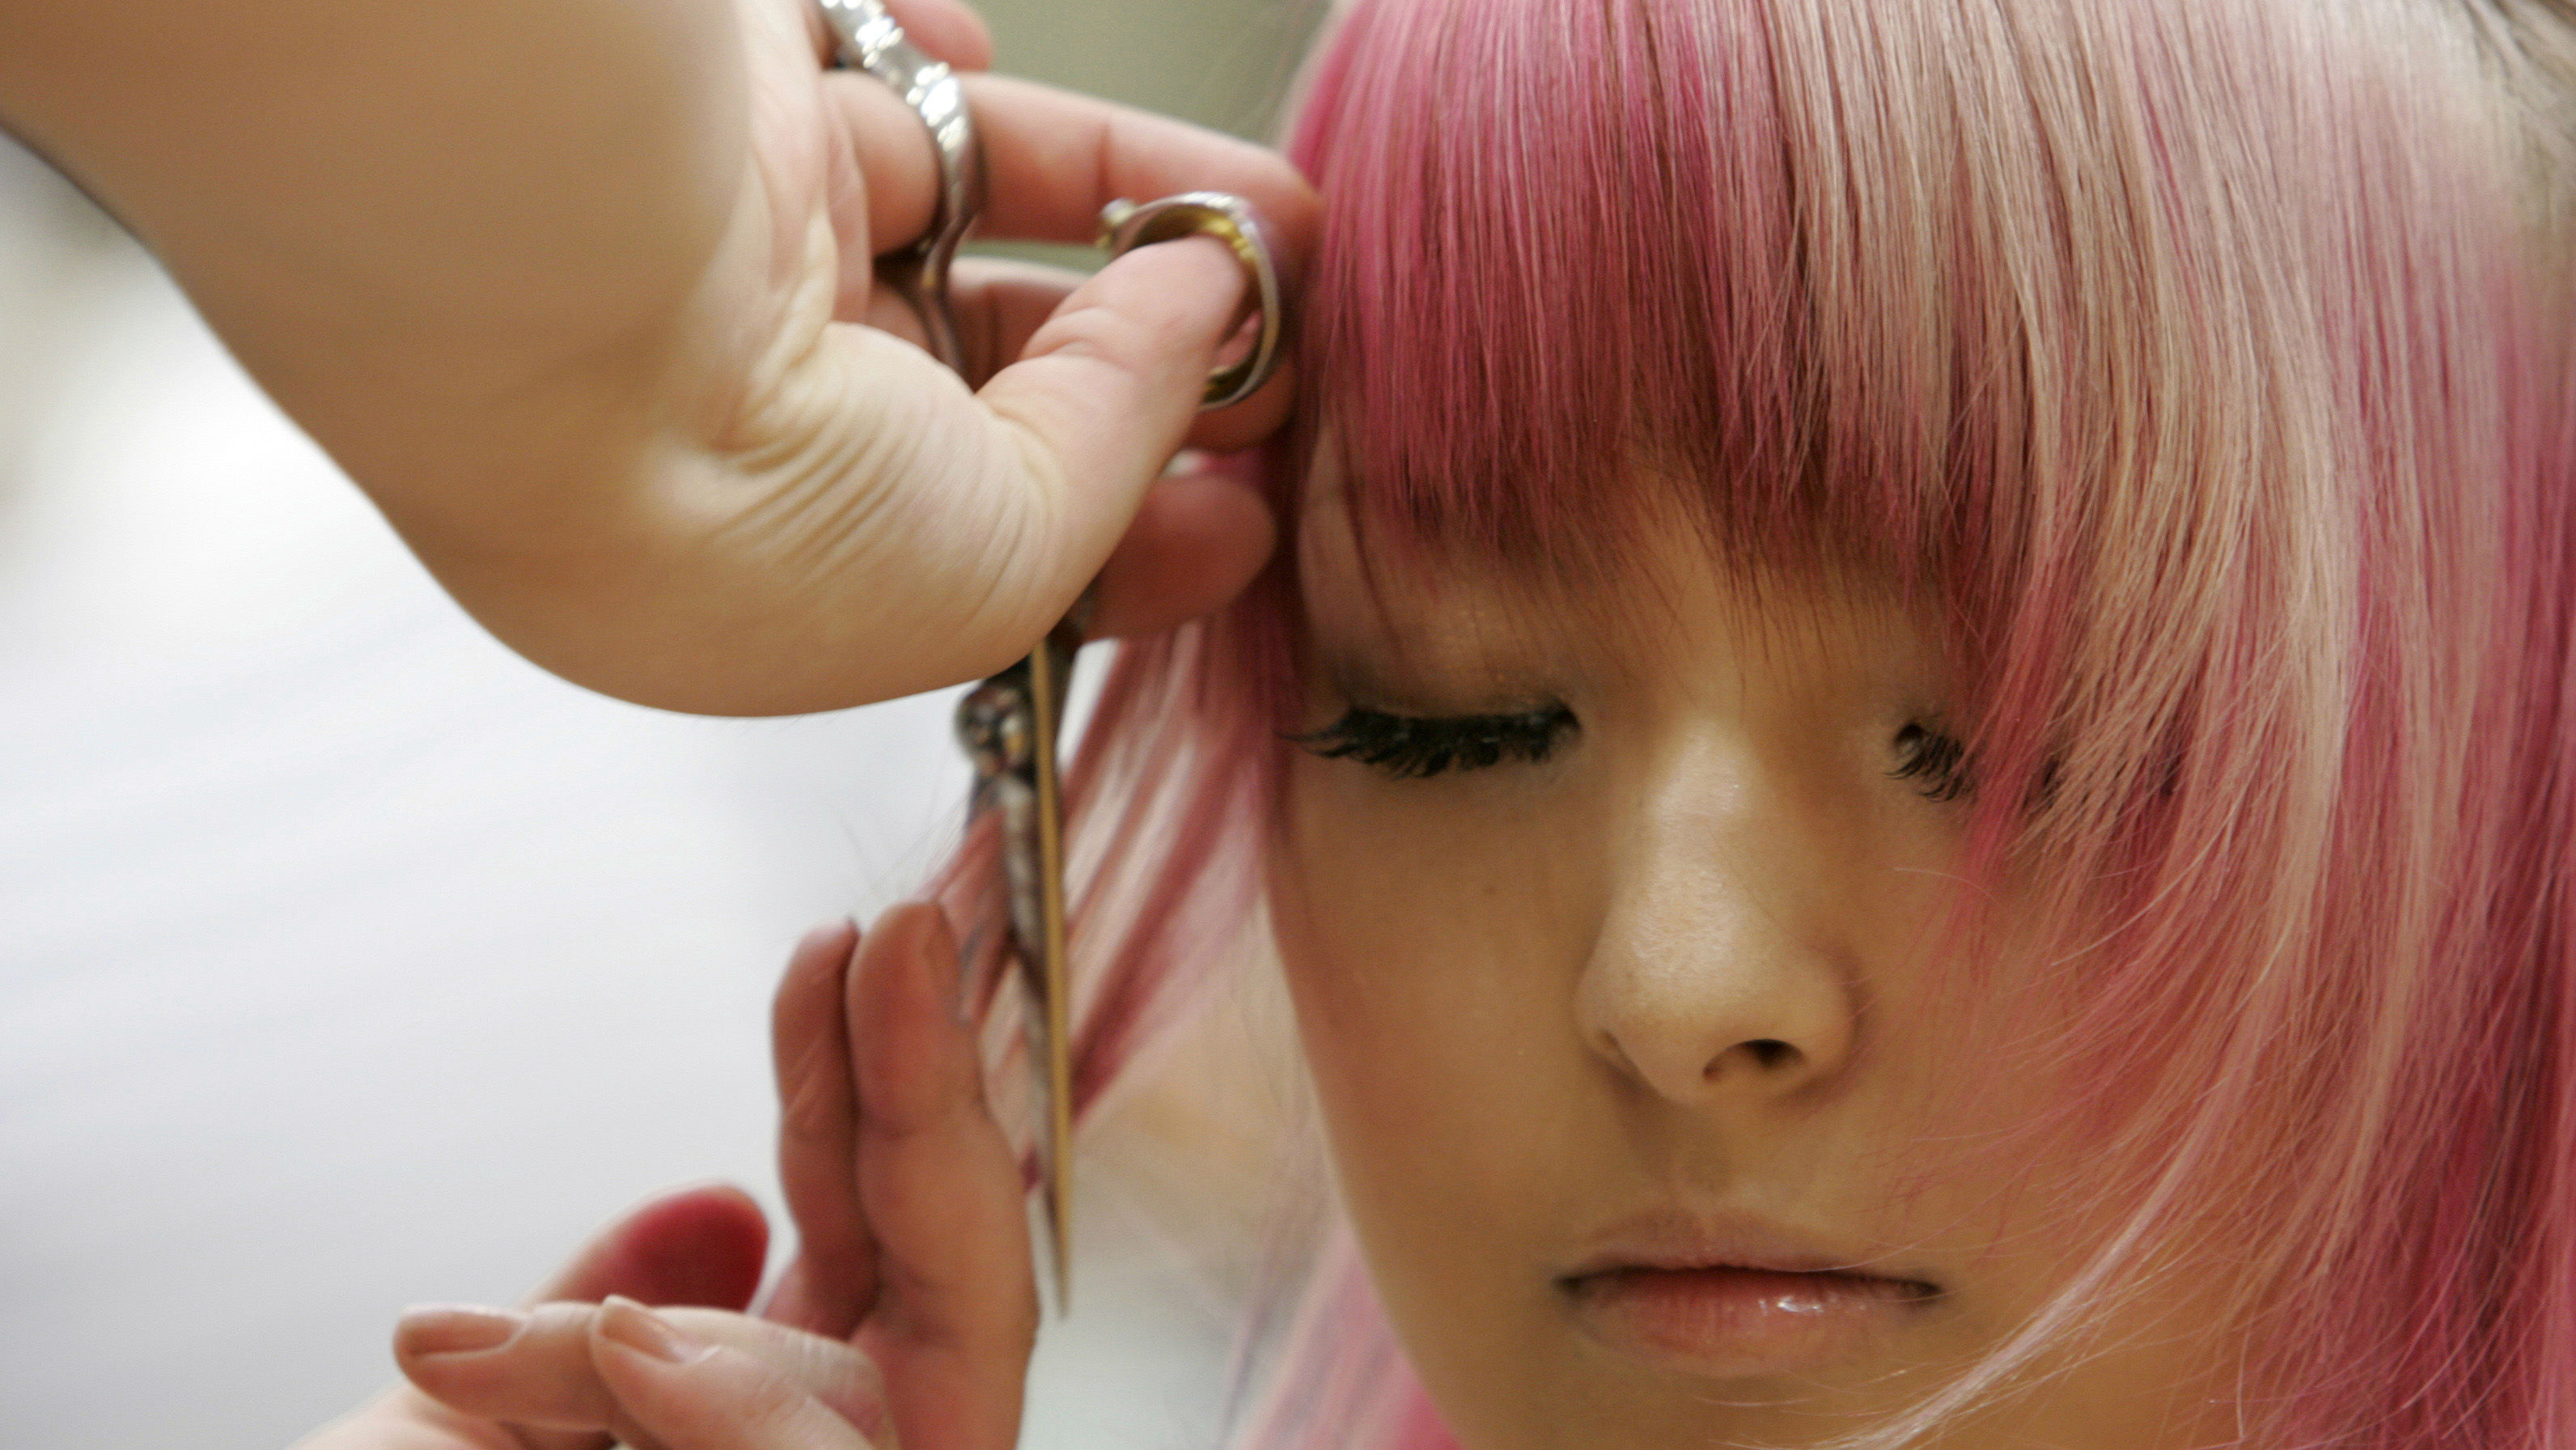 A stylist cuts a model's hair during the cut competition at the Nihon Hair Design Kyokai's hair contest in Tokyo July 10, 2007. 60 stylists competed in timed events to cut models' hair for a grand prize of 150,000 yen (US$1,200).